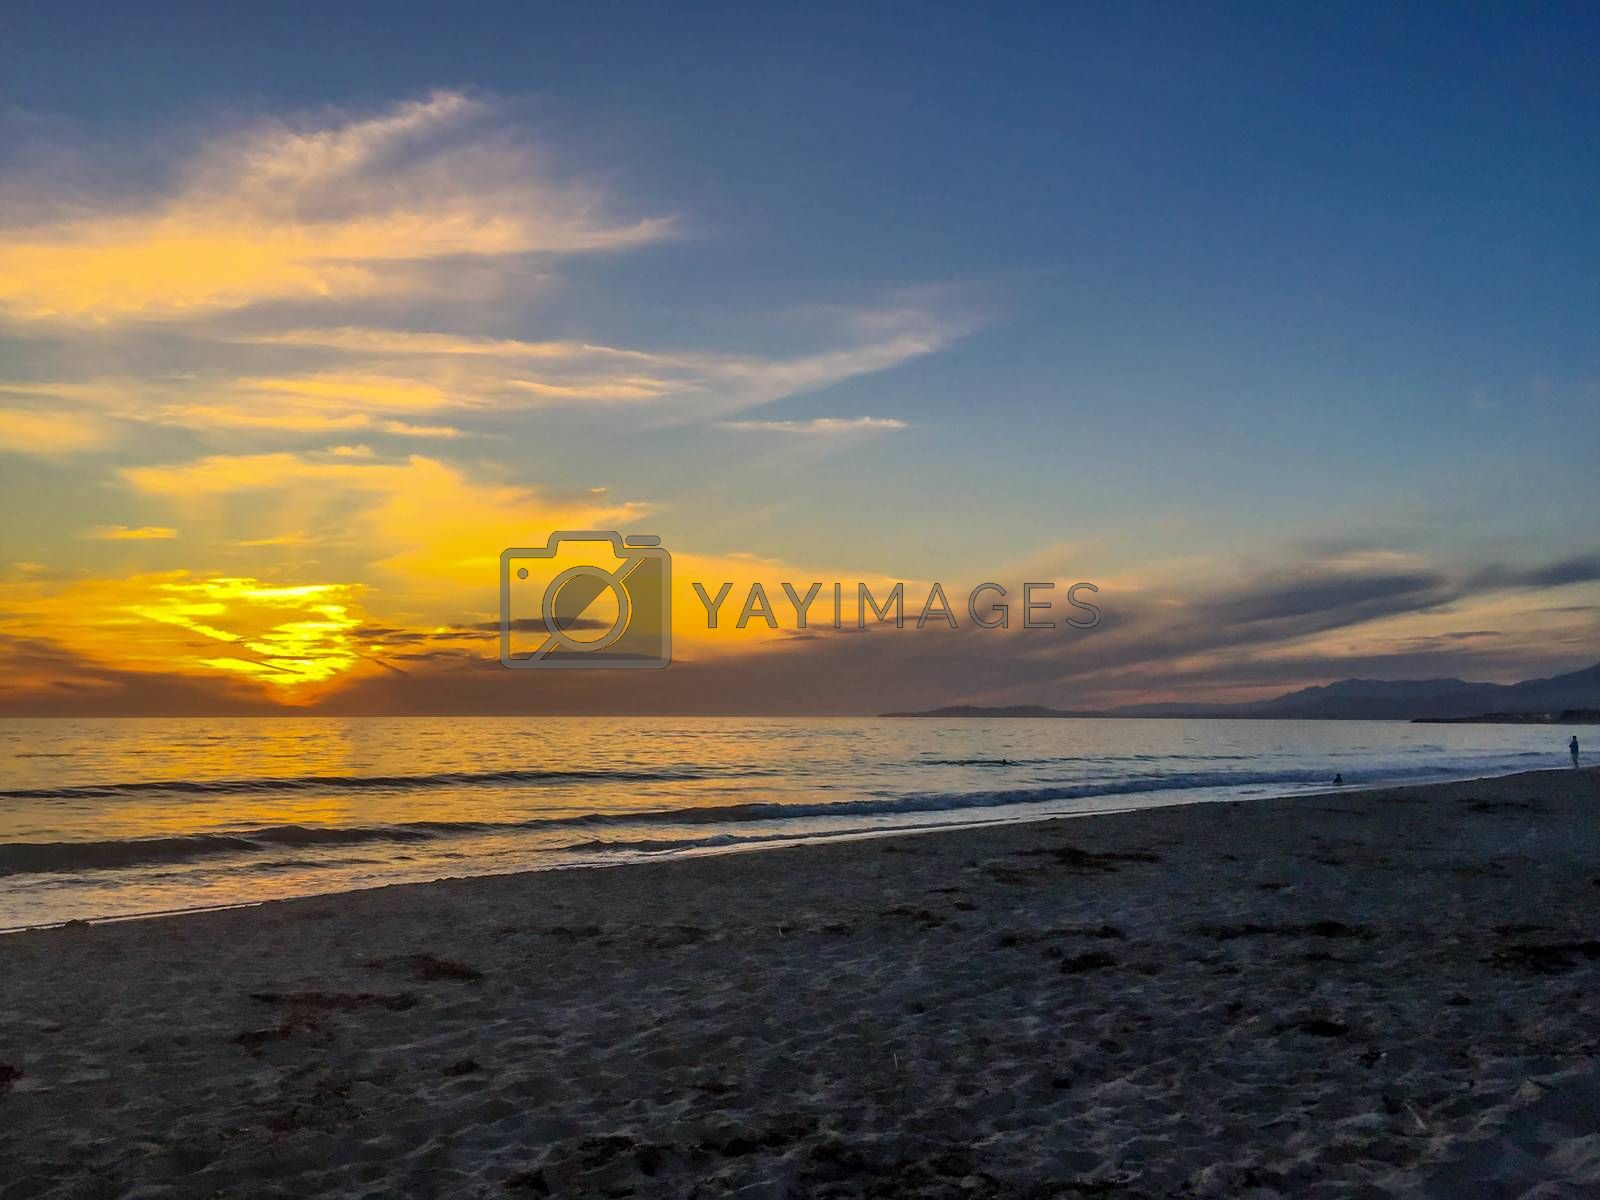 Romantic seaside sunset with orange and blue clouds in a sandy beach